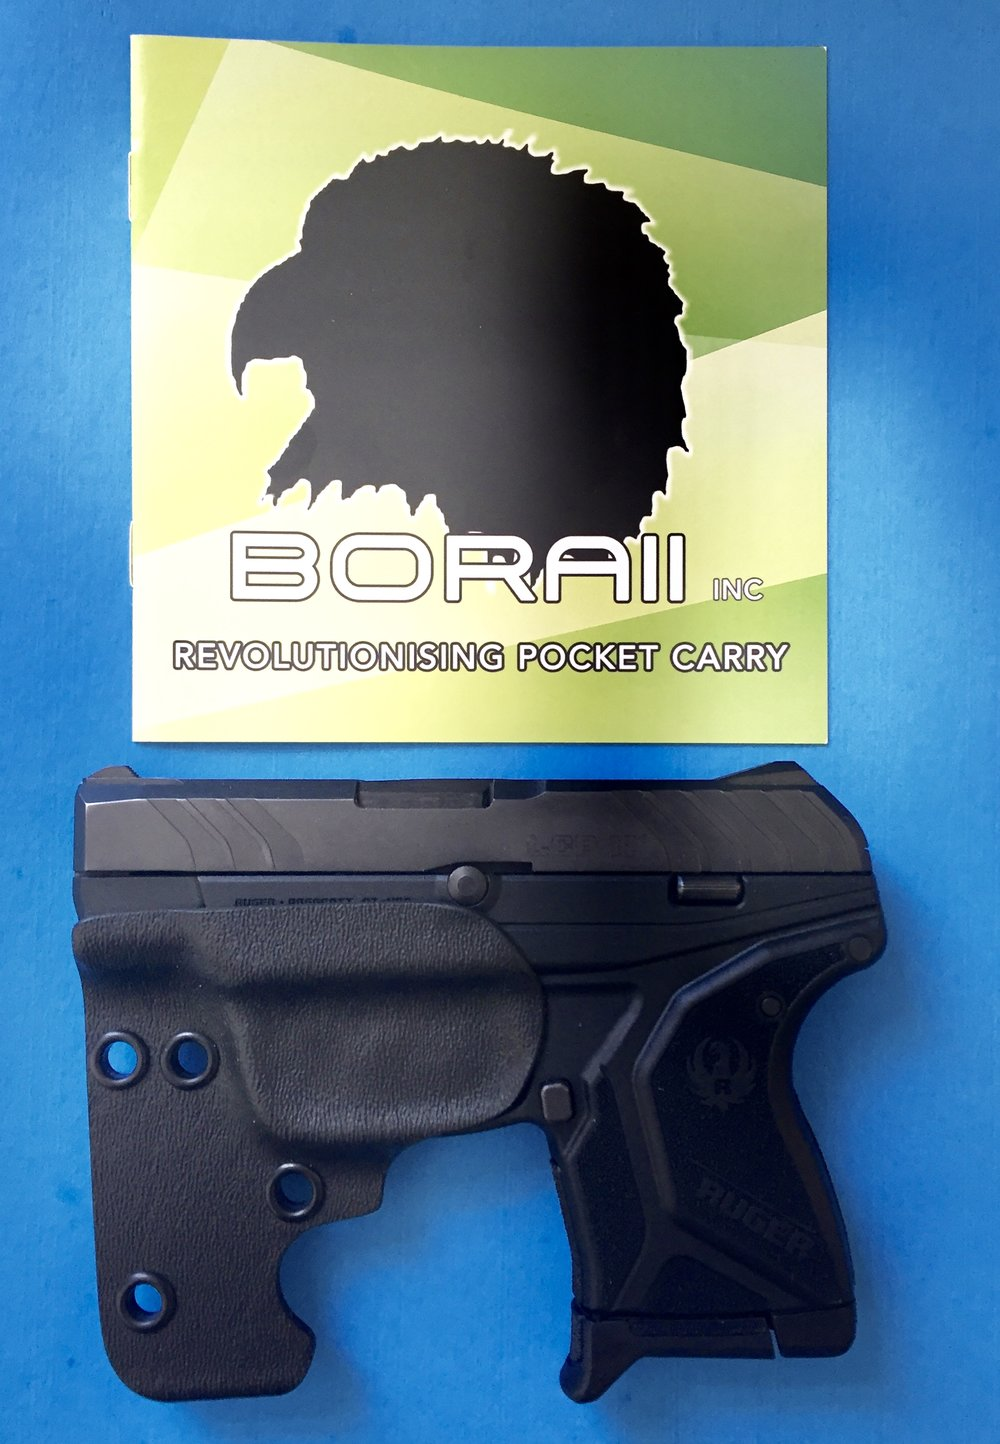 BORAII and the Ruger LCP II